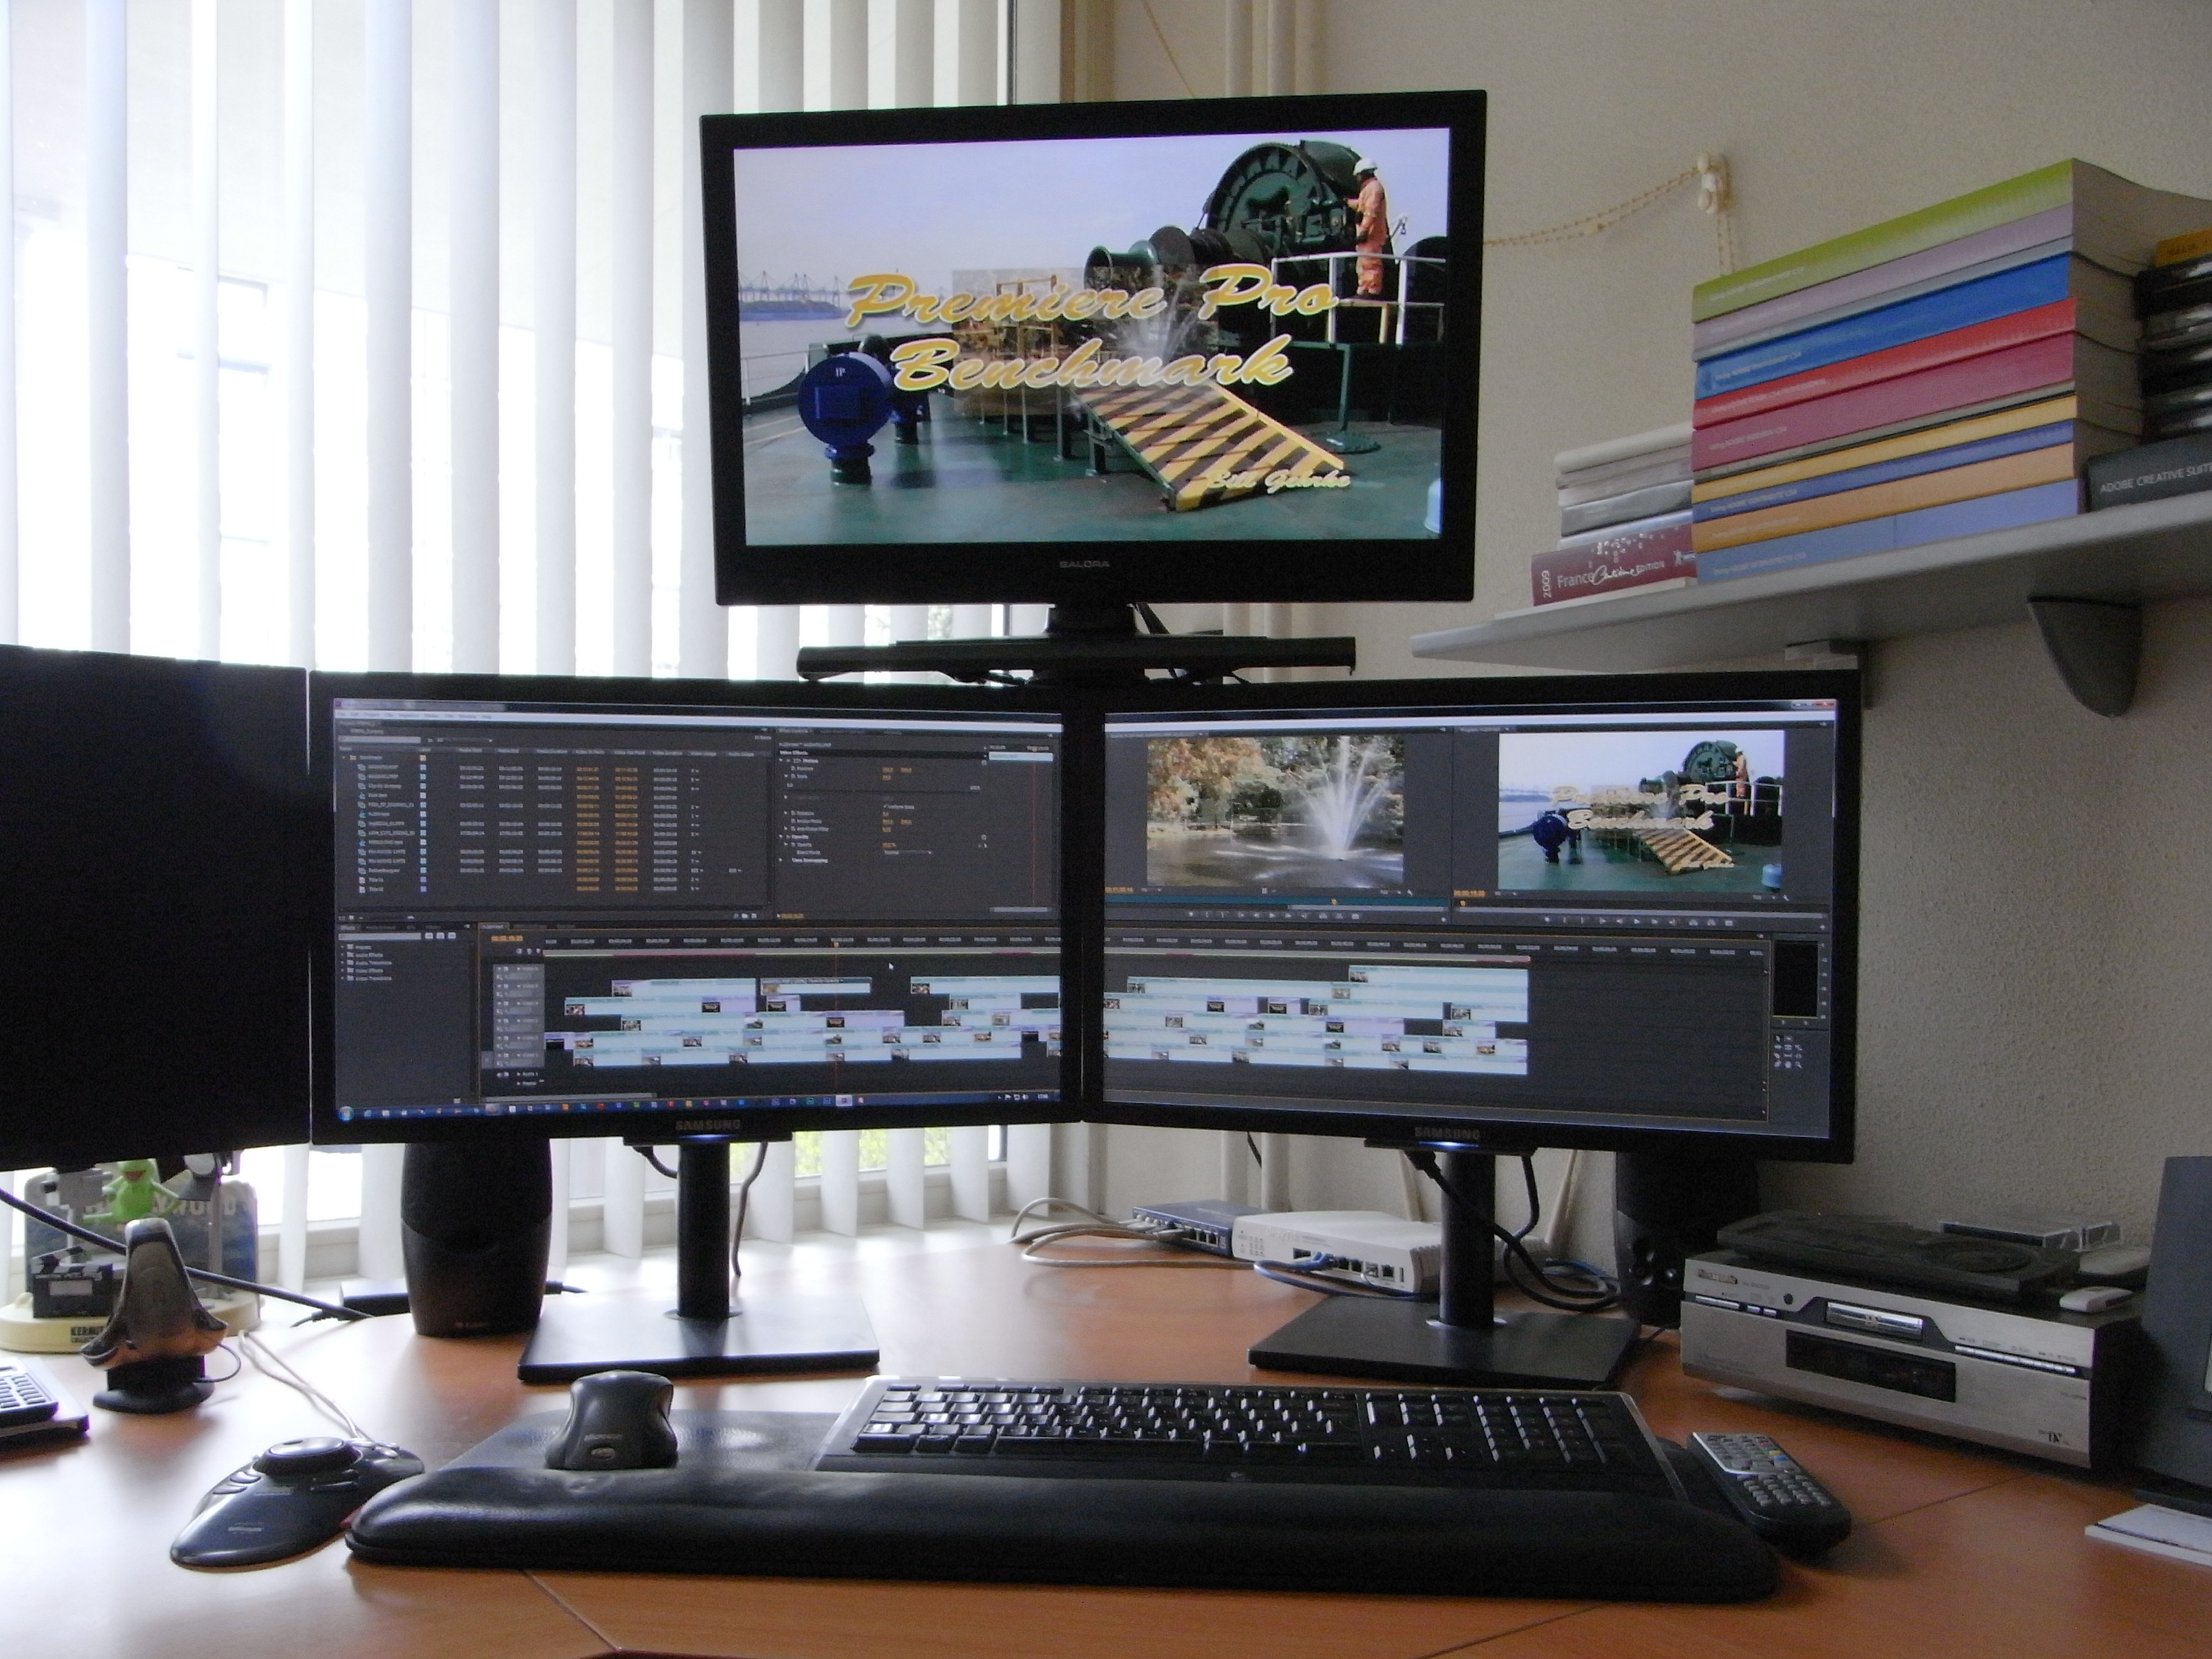 How Do You Setup Your Monitors For 3 Screen Editing At